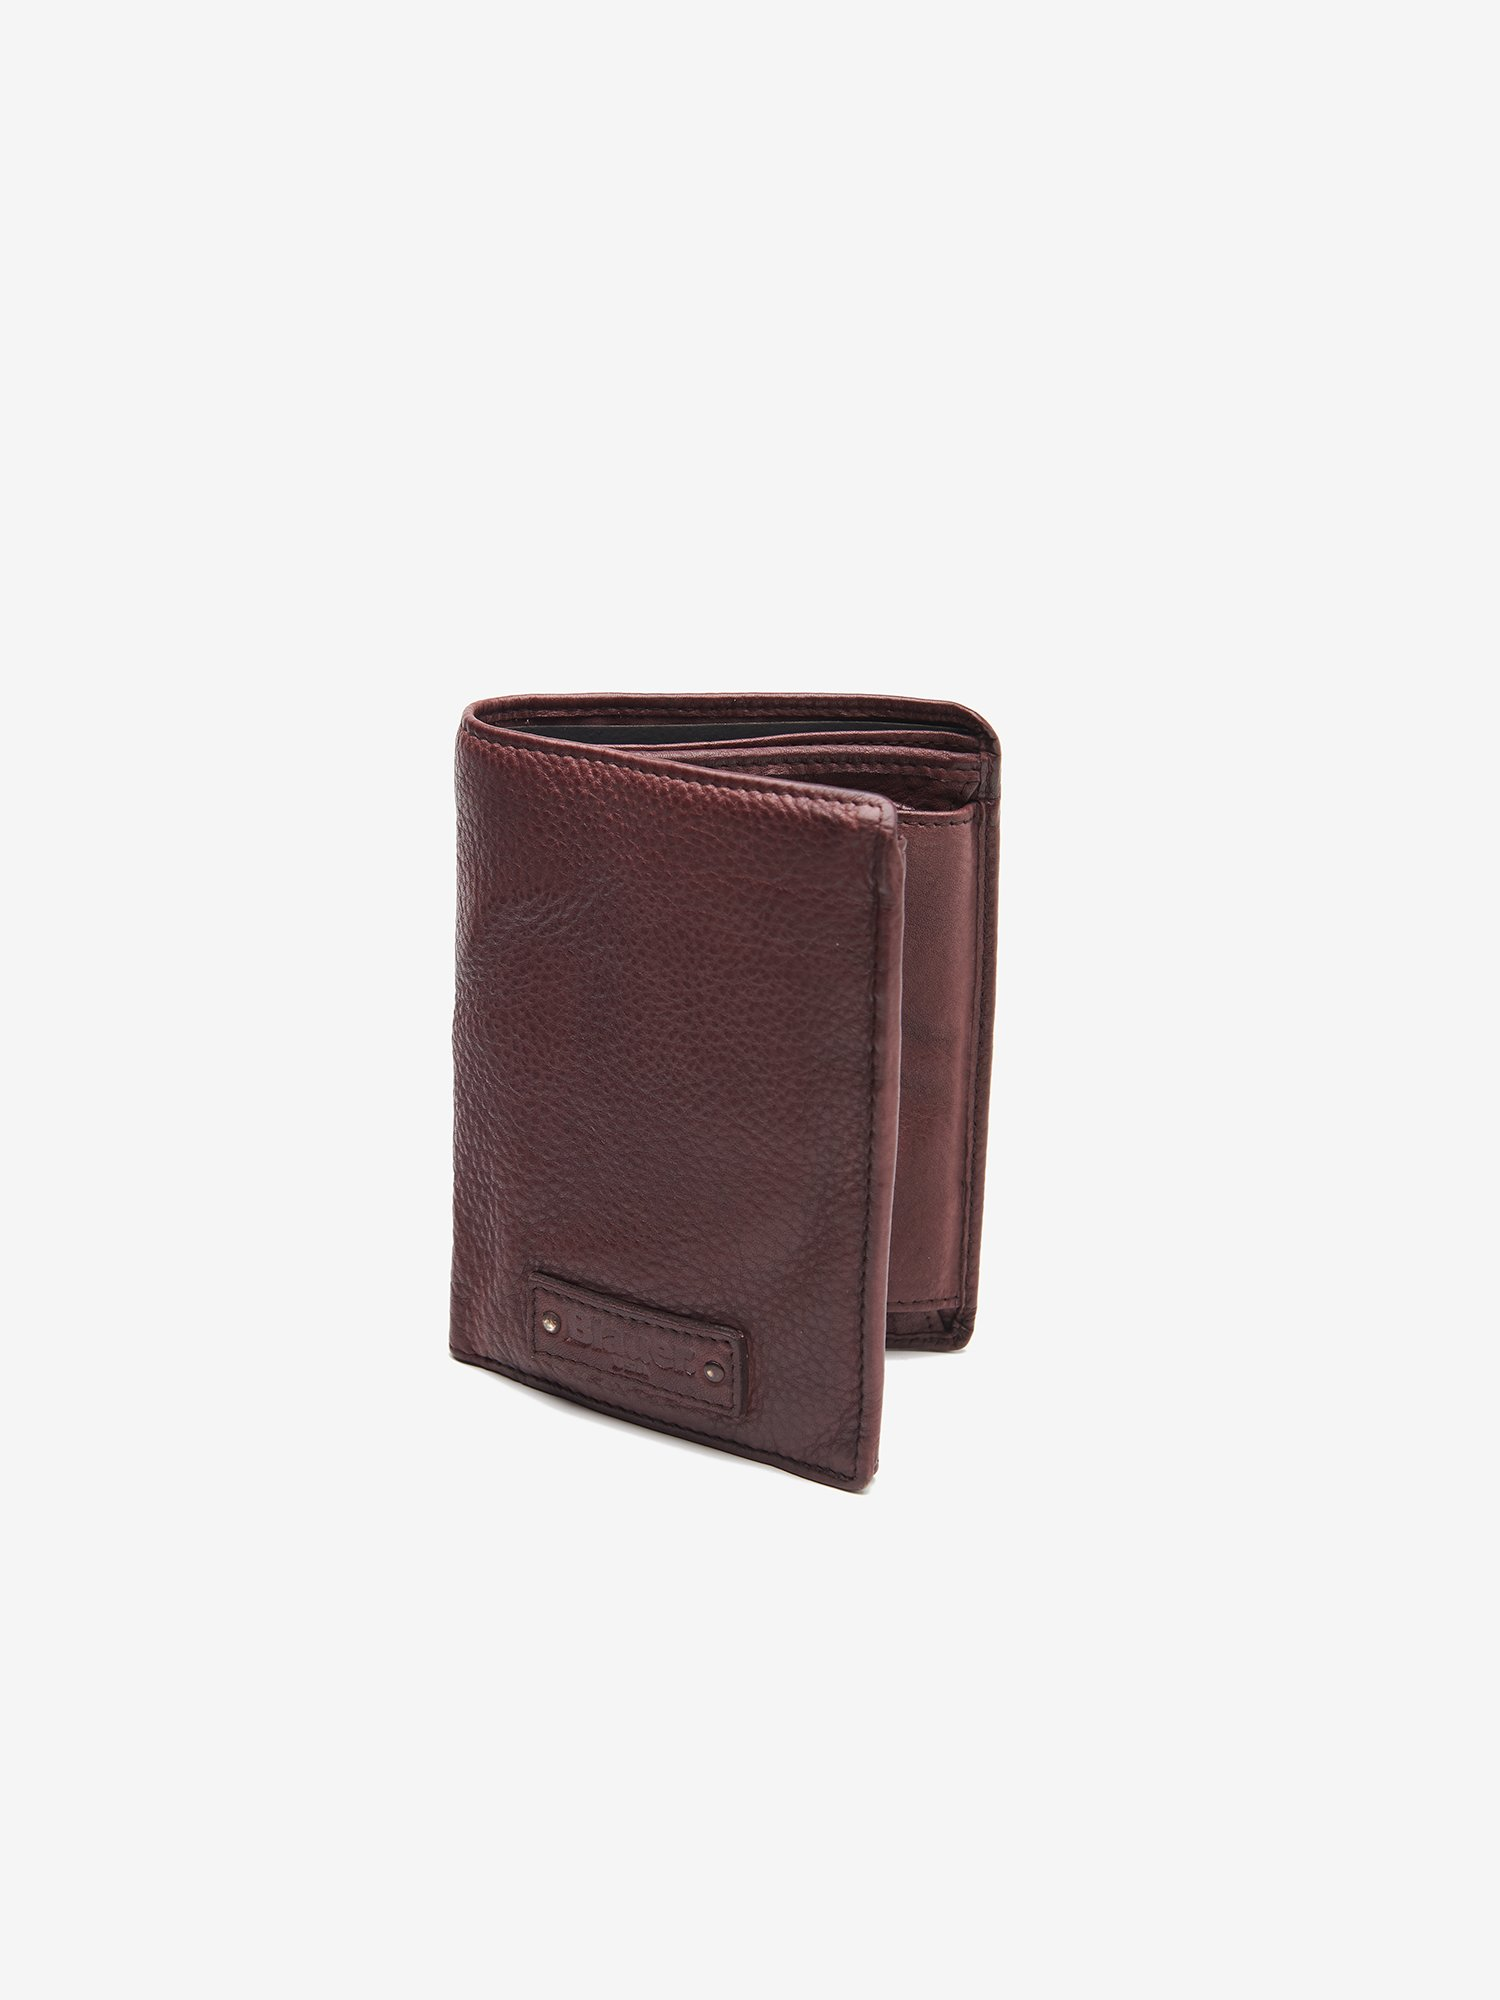 Blauer - SMALL LEATHER WALLET - chestnut brown - Blauer